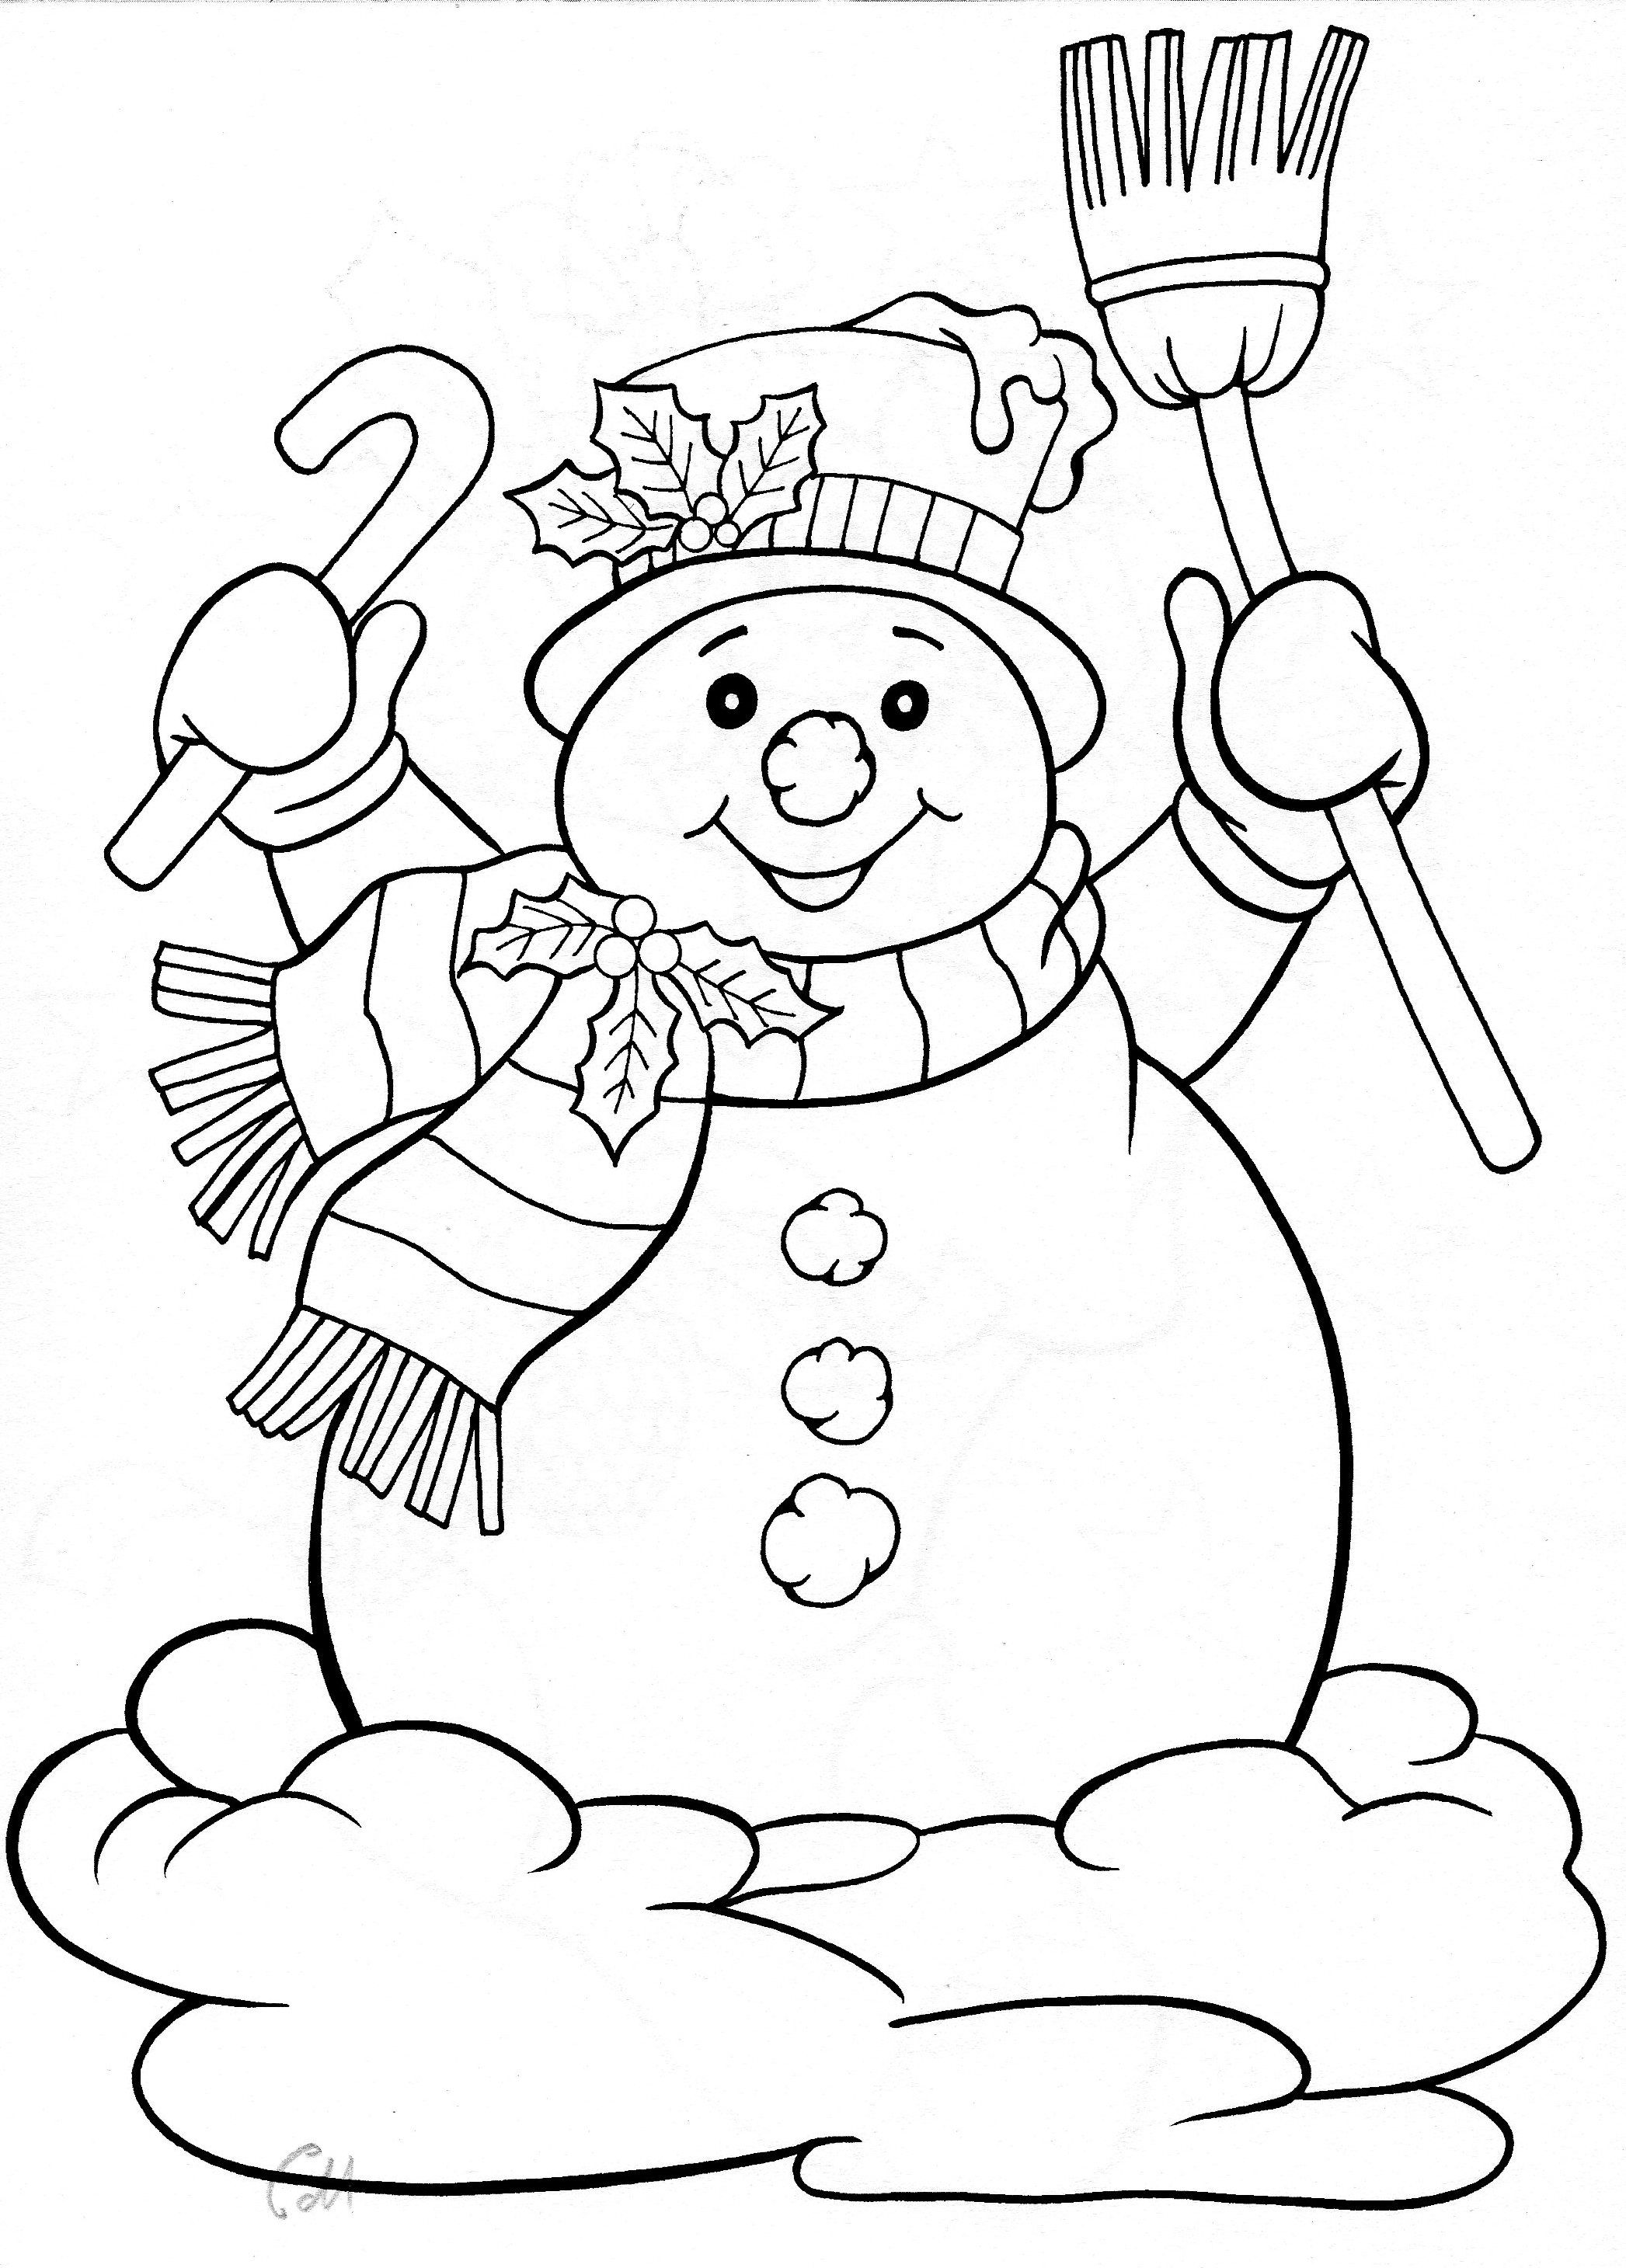 snowman for winter holiday Drawing template coloring